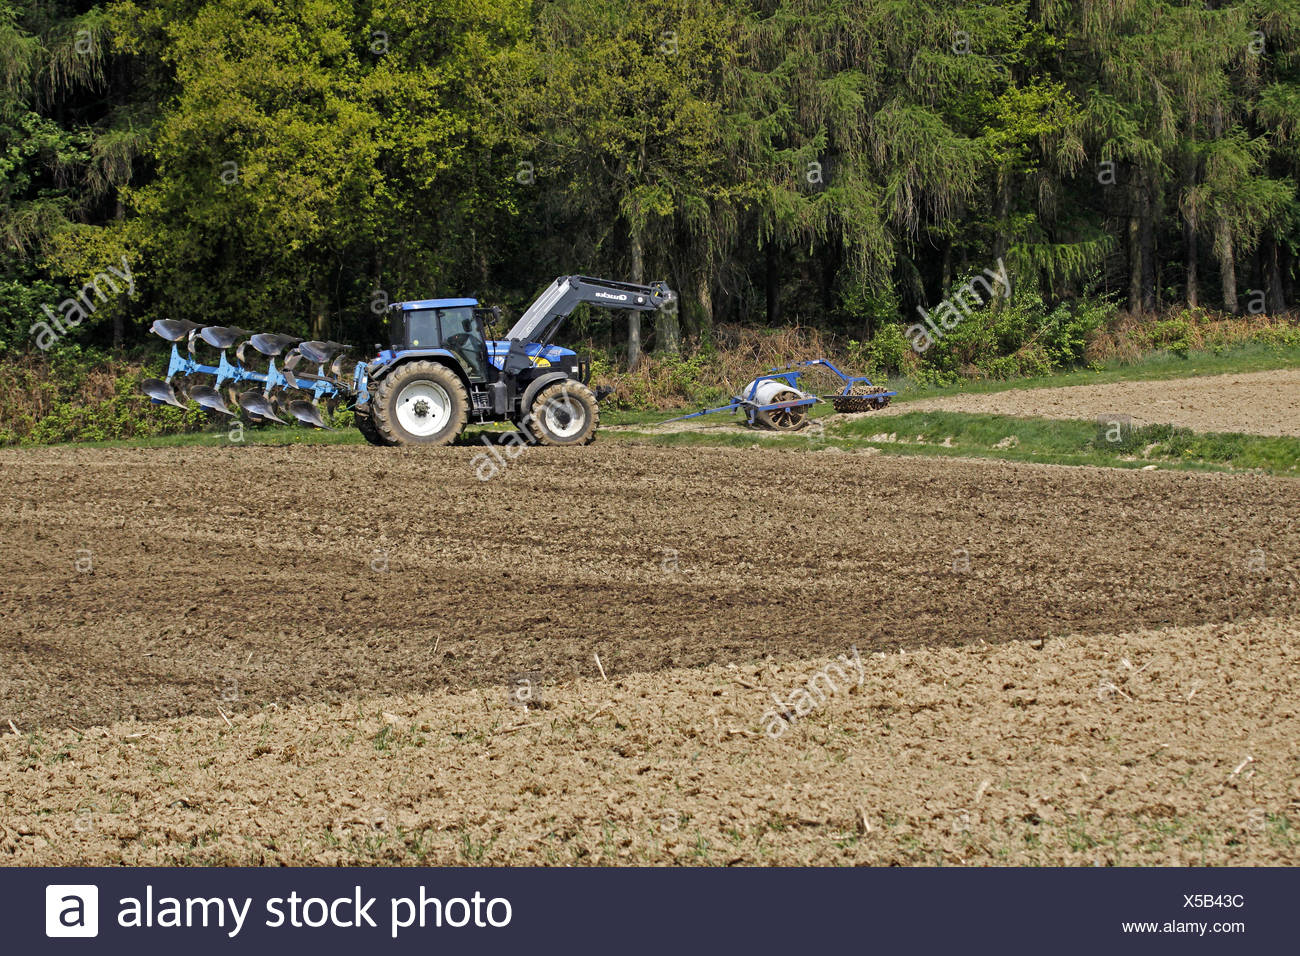 Farming, tractor in a field in the Teckenburger country at Holperdorp, North Rhine-Westphalia, Germany - Stock Image